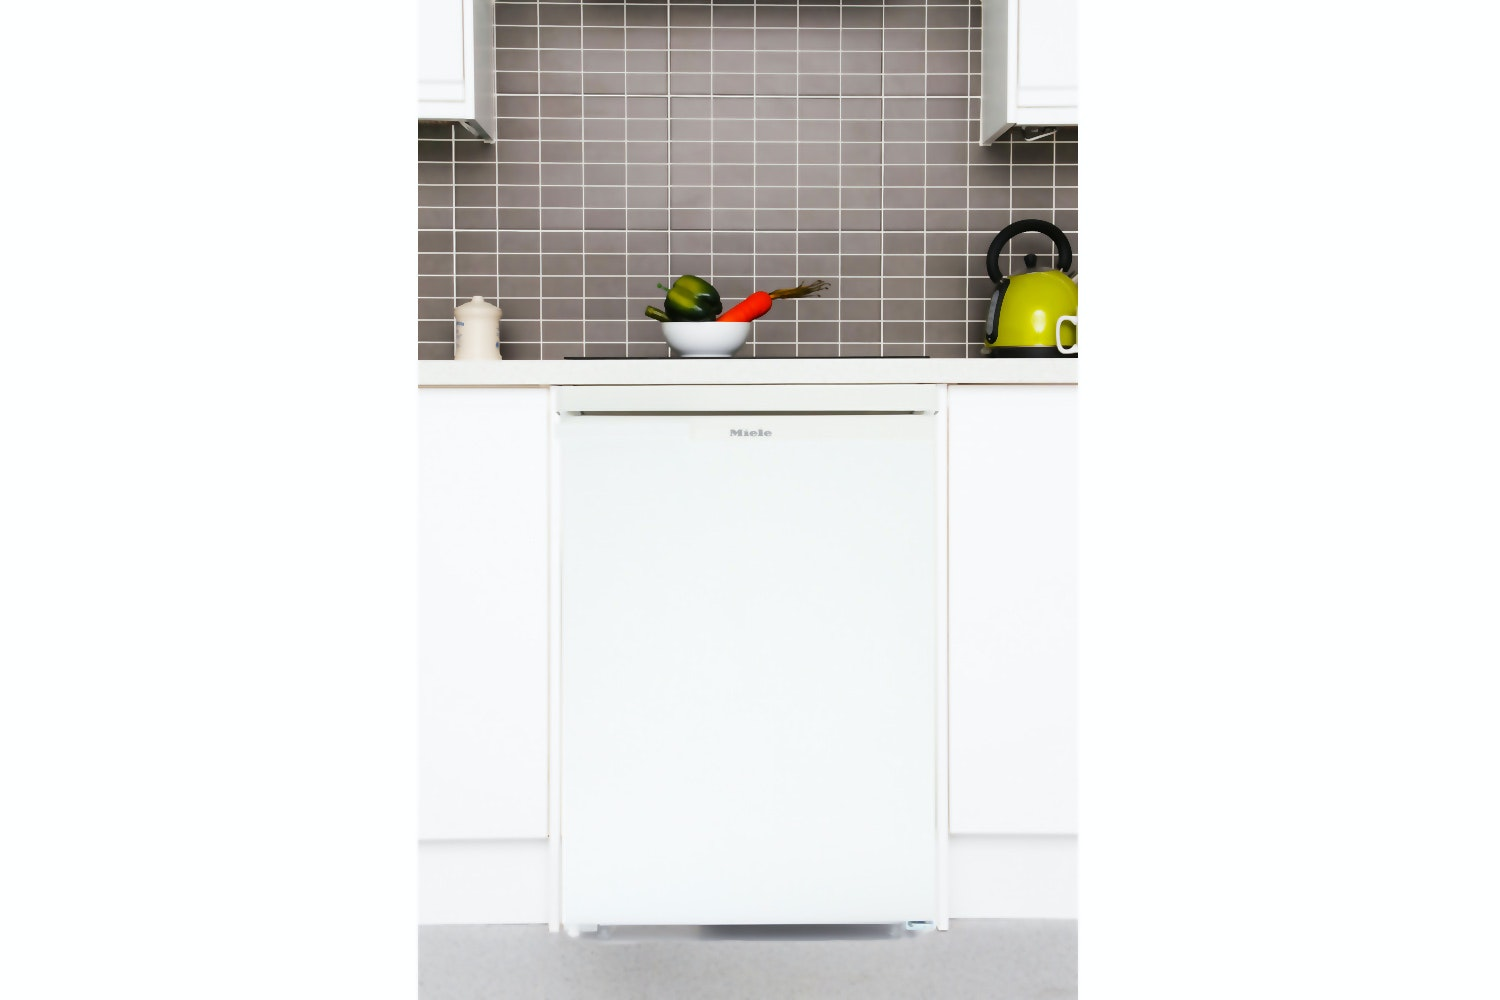 Miele K 12012 S-2  Freestanding refrigerator   with freezer compartment for intelligent refrigeration in the smallest space